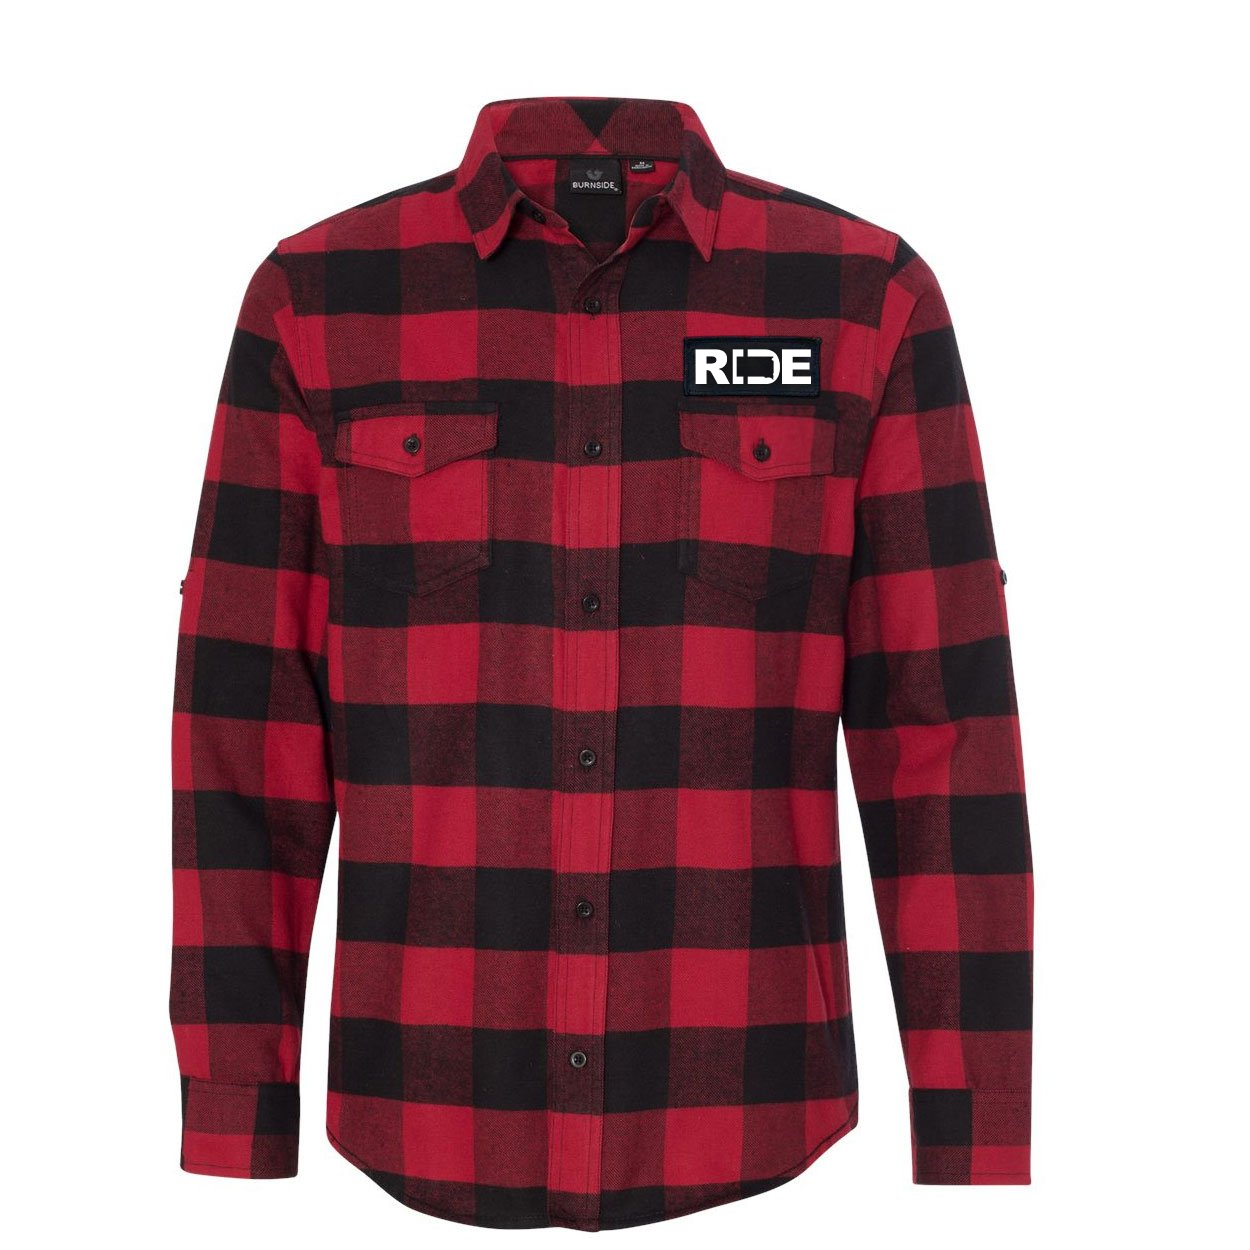 Ride South Dakota Classic Unisex Long Sleeve Woven Patch Flannel Shirt Red/Black Buffalo (White Logo)